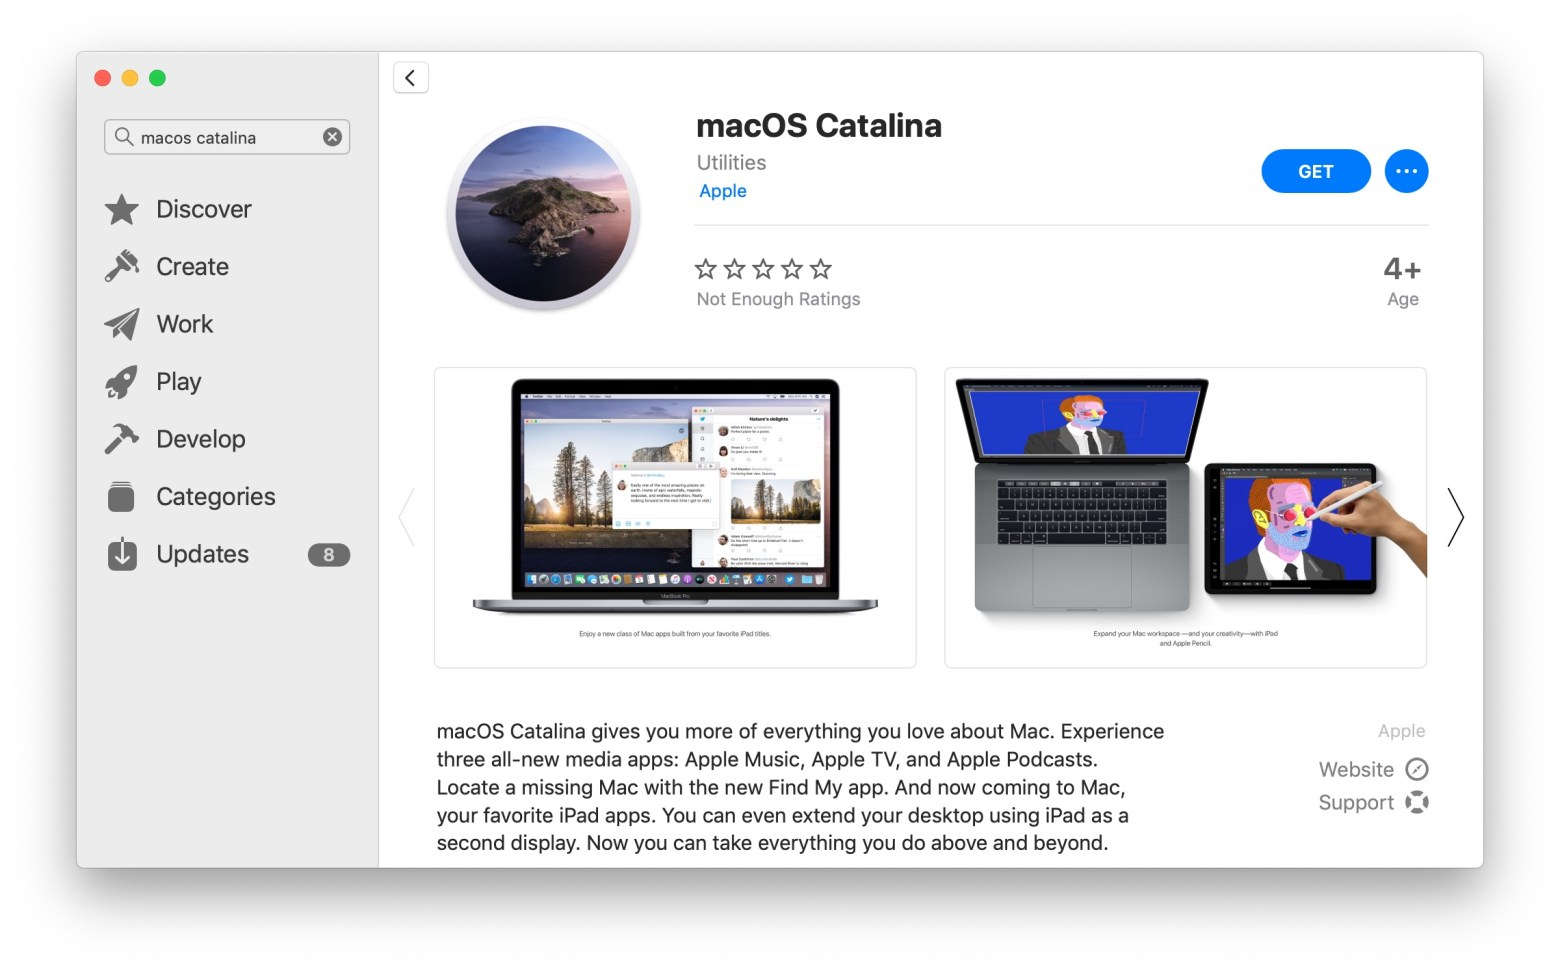 MacOS Catalina Download Now Available to All Mac Users